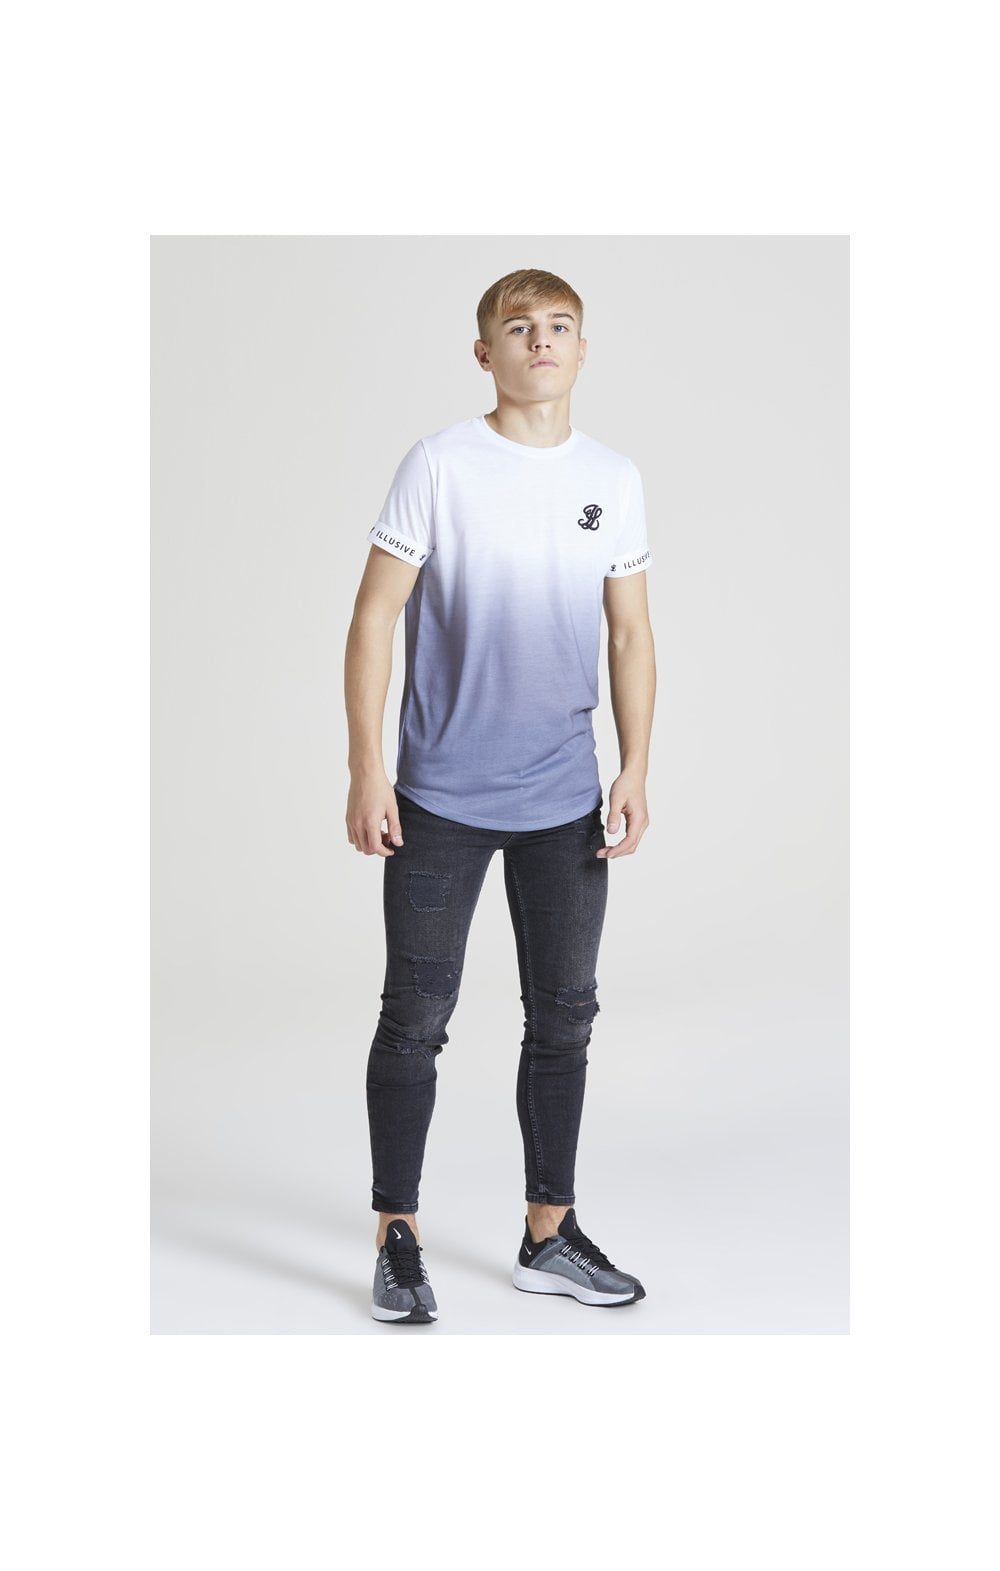 Load image into Gallery viewer, Illusive London Fade Tech Tee – White & Grey (2)